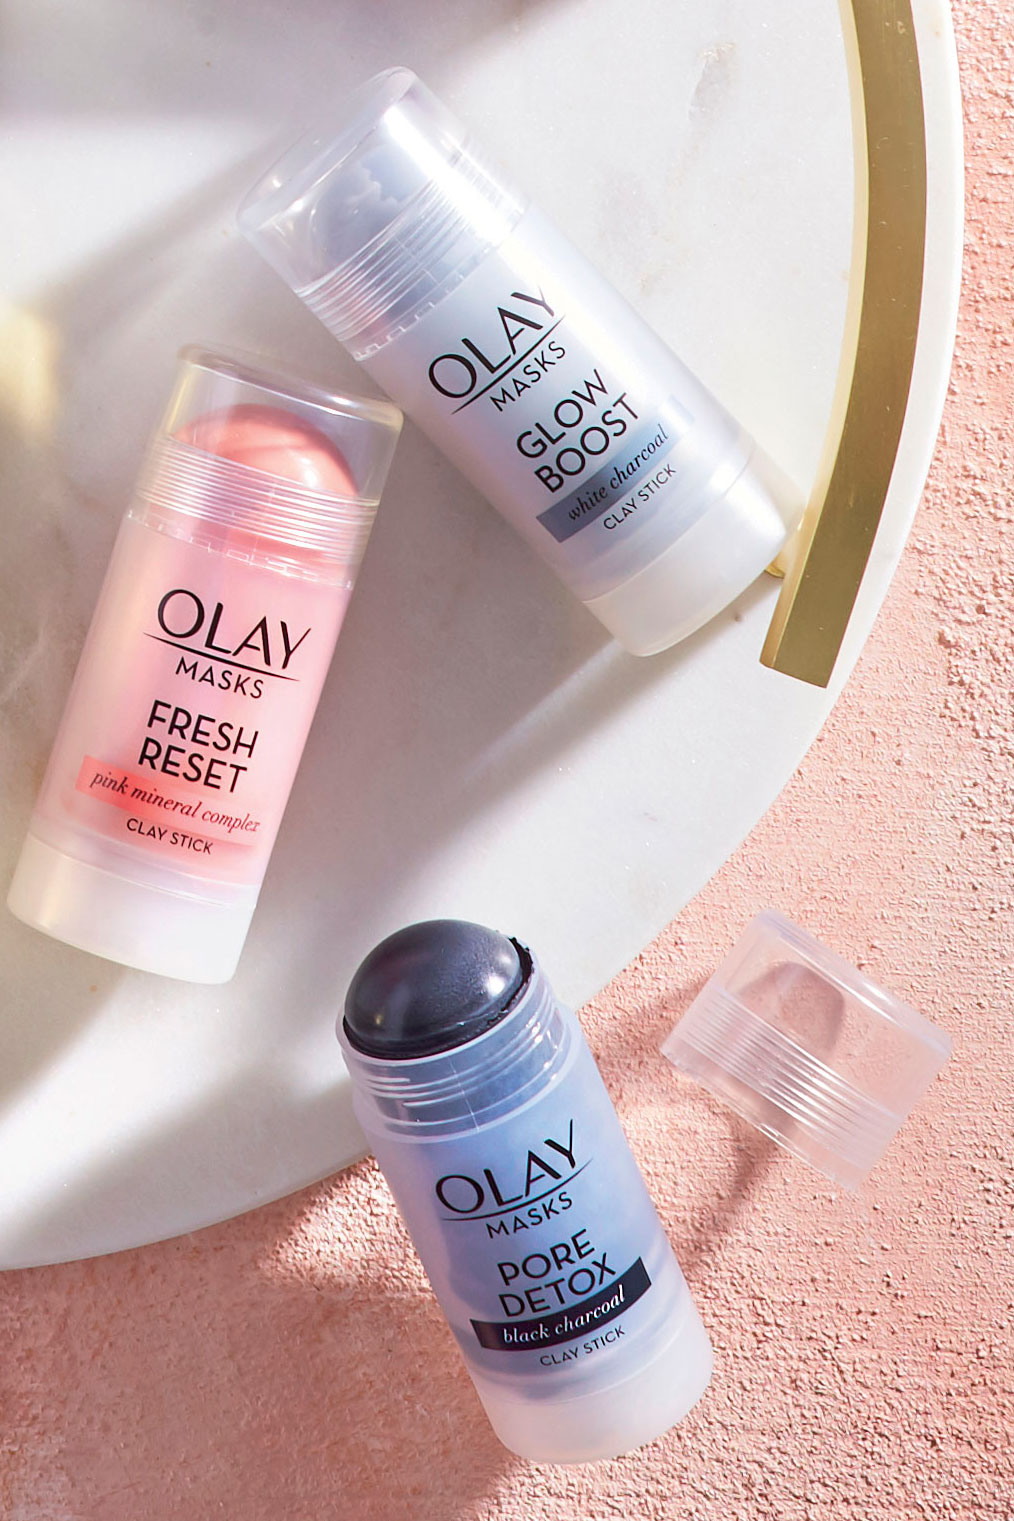 Olay Clay Face Mask Sticks